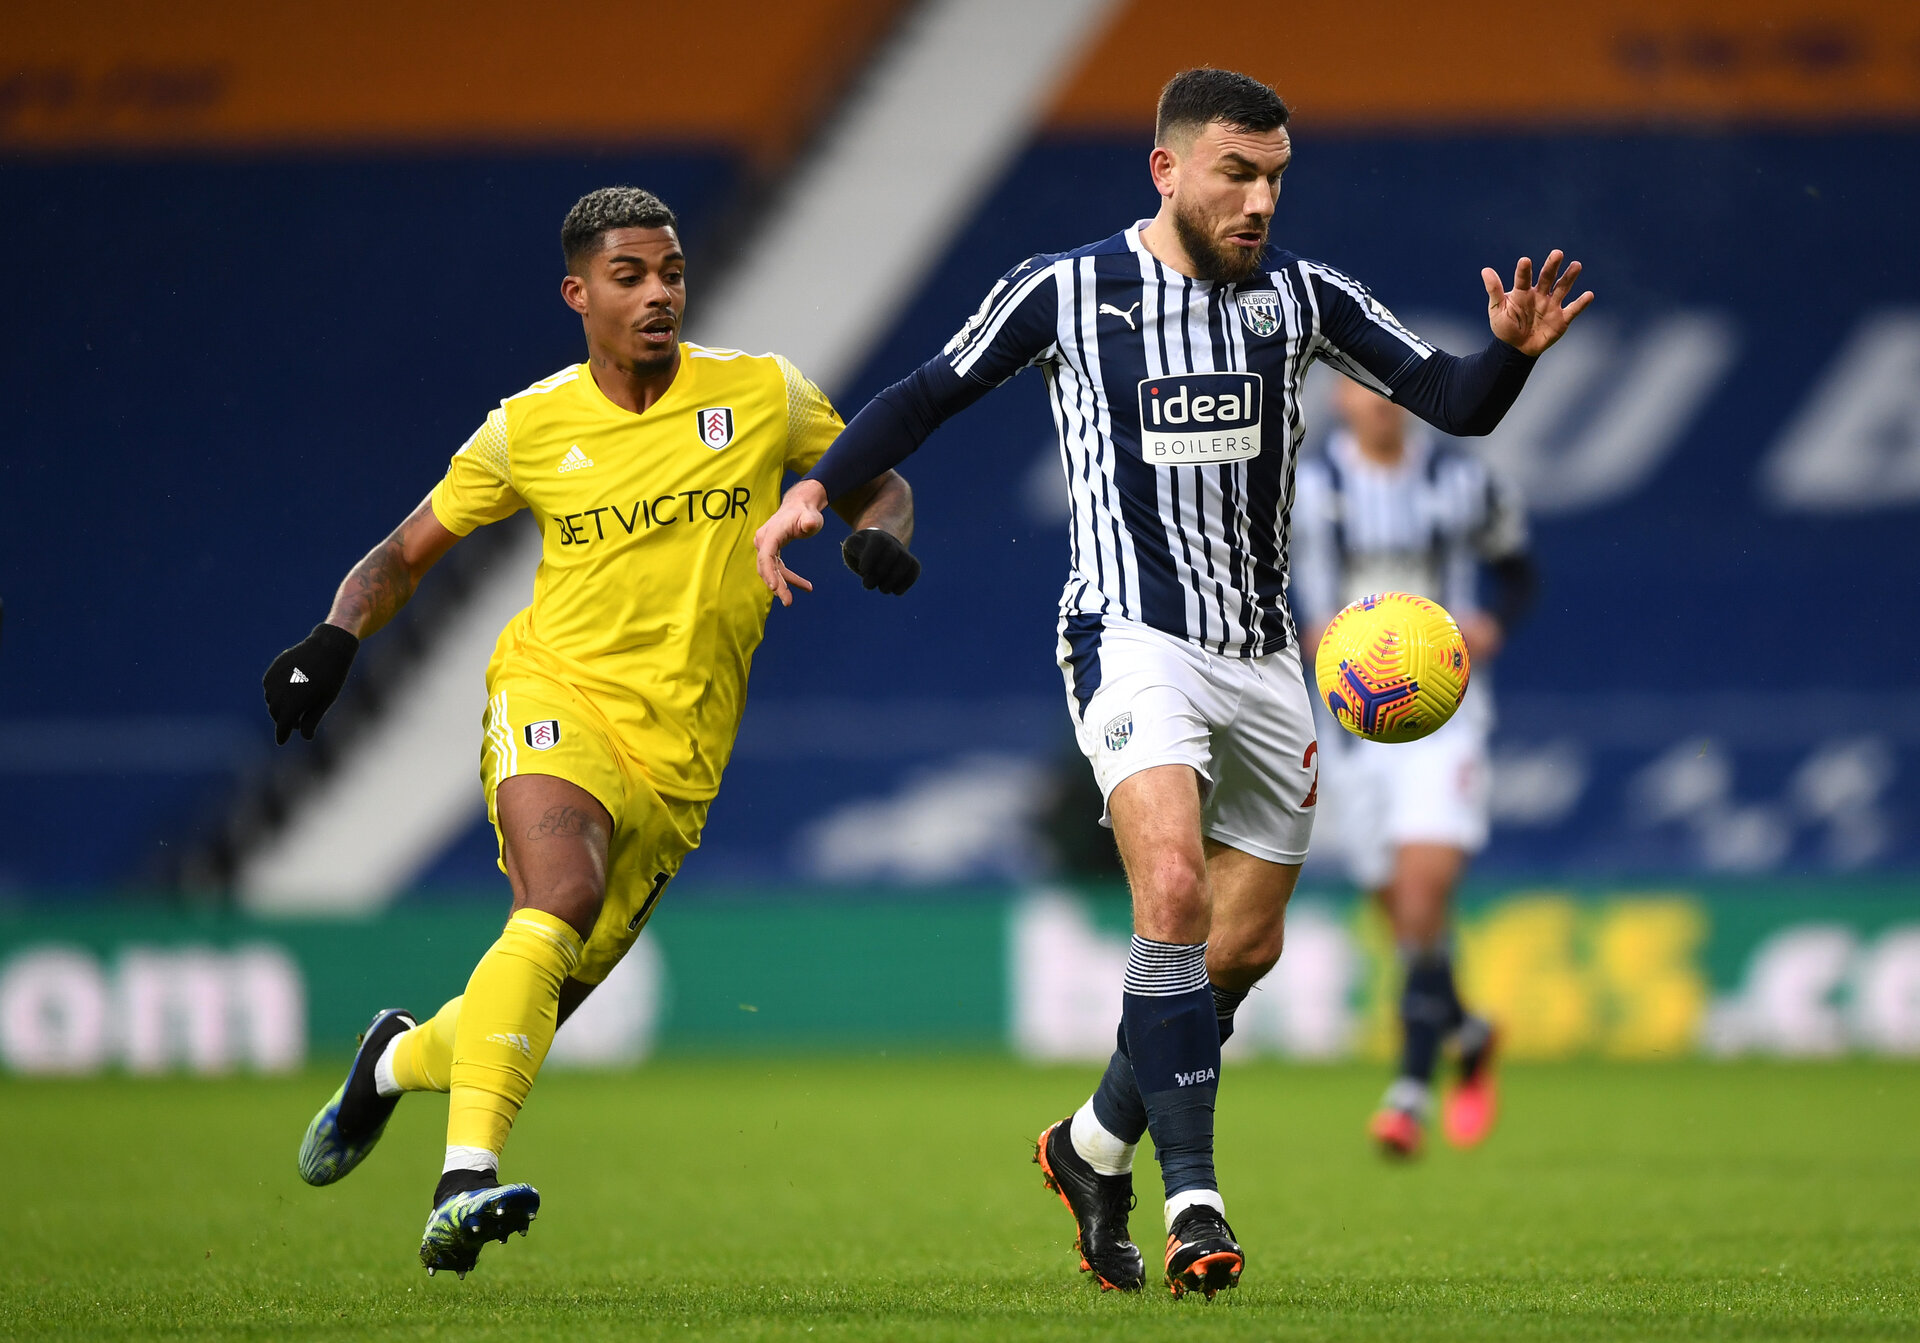 WEST BROMWICH, ENGLAND - JANUARY 30:  Robert Snodgrass of West Bromwich Albion is challenged by Mario Lemina of Fulham during the Premier League match between West Bromwich Albion and Fulham at The Hawthorns on January 30, 2021 in West Bromwich, England. Sporting stadiums around the UK remain under strict restrictions due to the Coronavirus Pandemic as Government social distancing laws prohibit fans inside venues resulting in games being played behind closed doors. (Photo by Gareth Copley/Getty Images)